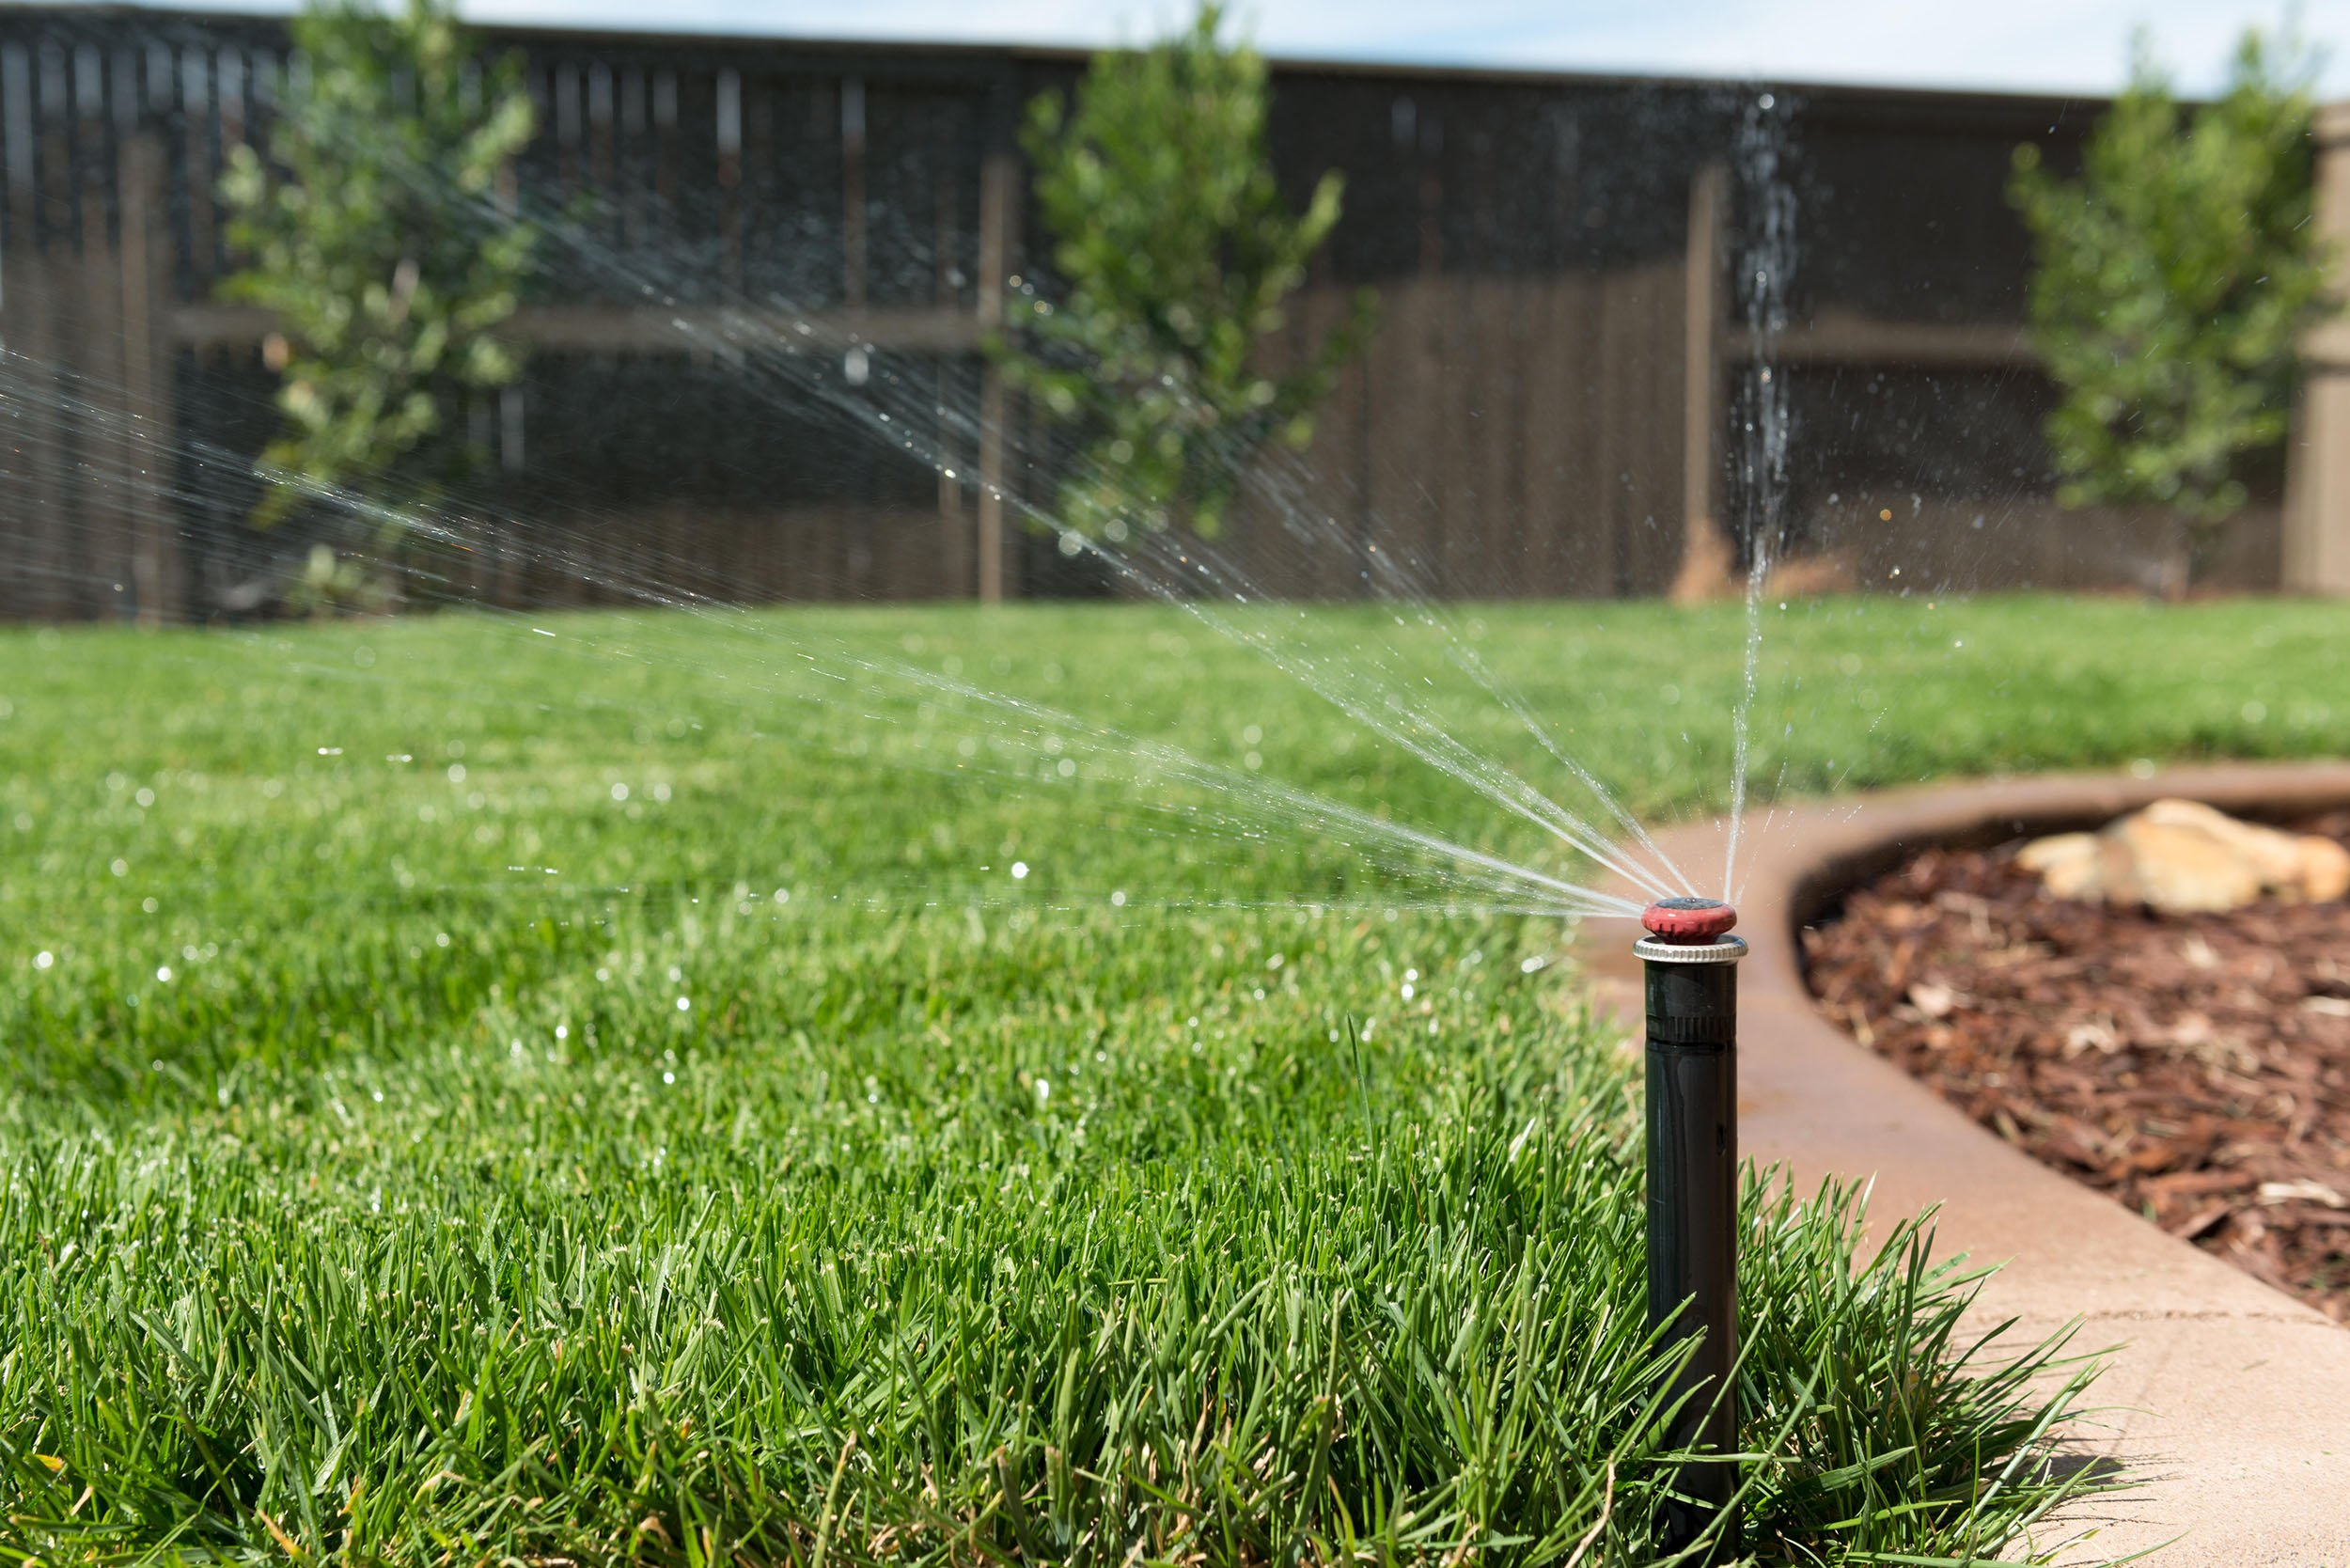 Perky Grass That Need Water Could Keep California Green Fast Growing Grass Seed Lowes Fast Growing Grass Seed Florida houzz 01 Fast Growing Grass Seed